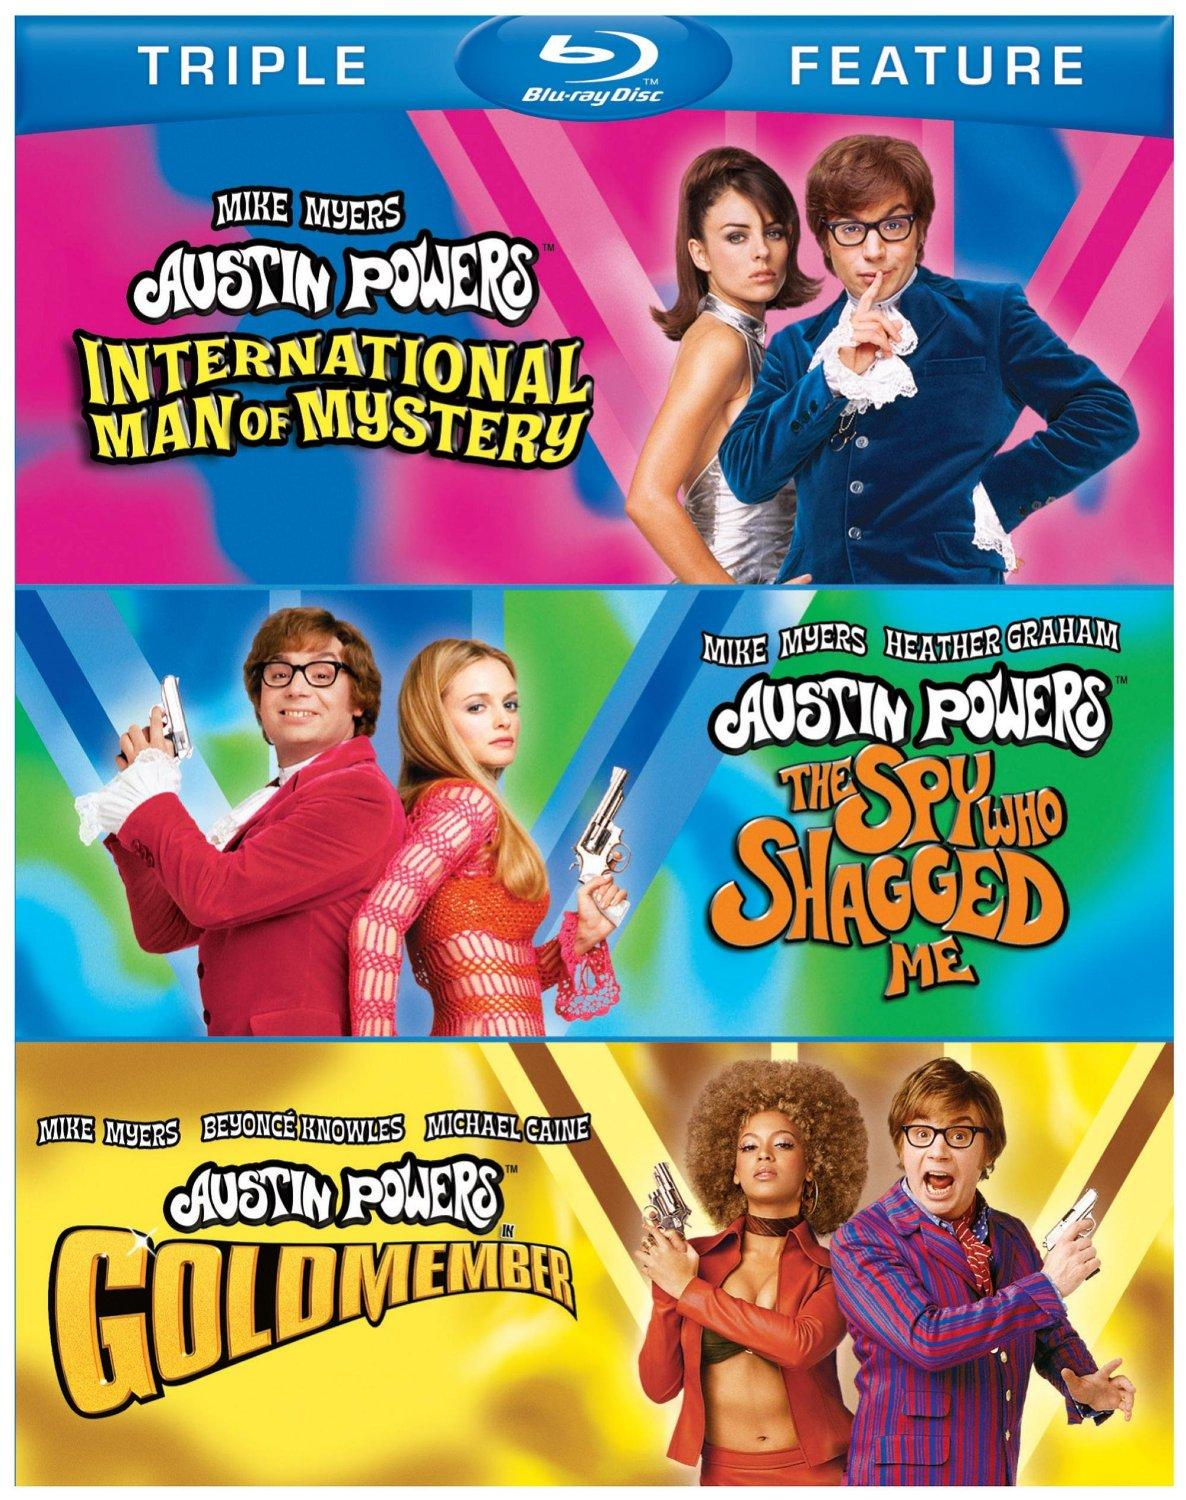 $7.99 Austin Powers Triple Feature (International Man of Mystery / The Spy Who Shagged Me / Goldmember) [Blu-ray]